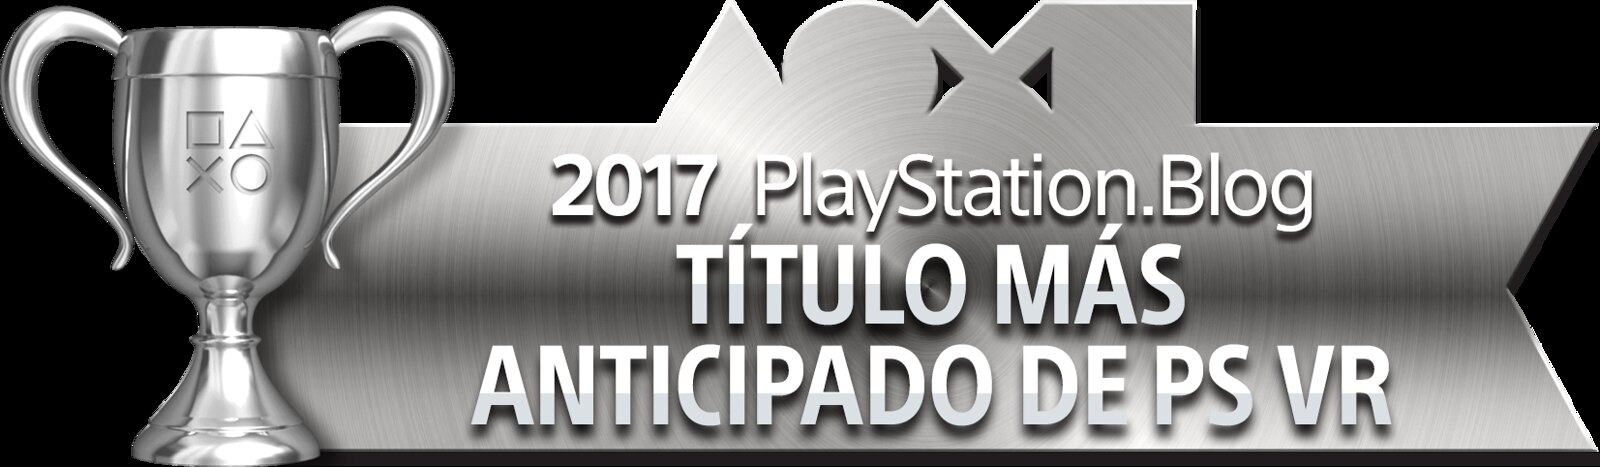 PlayStation Blog Game of the Year 2017 - Most Anticipated PS VR Title (Silver)